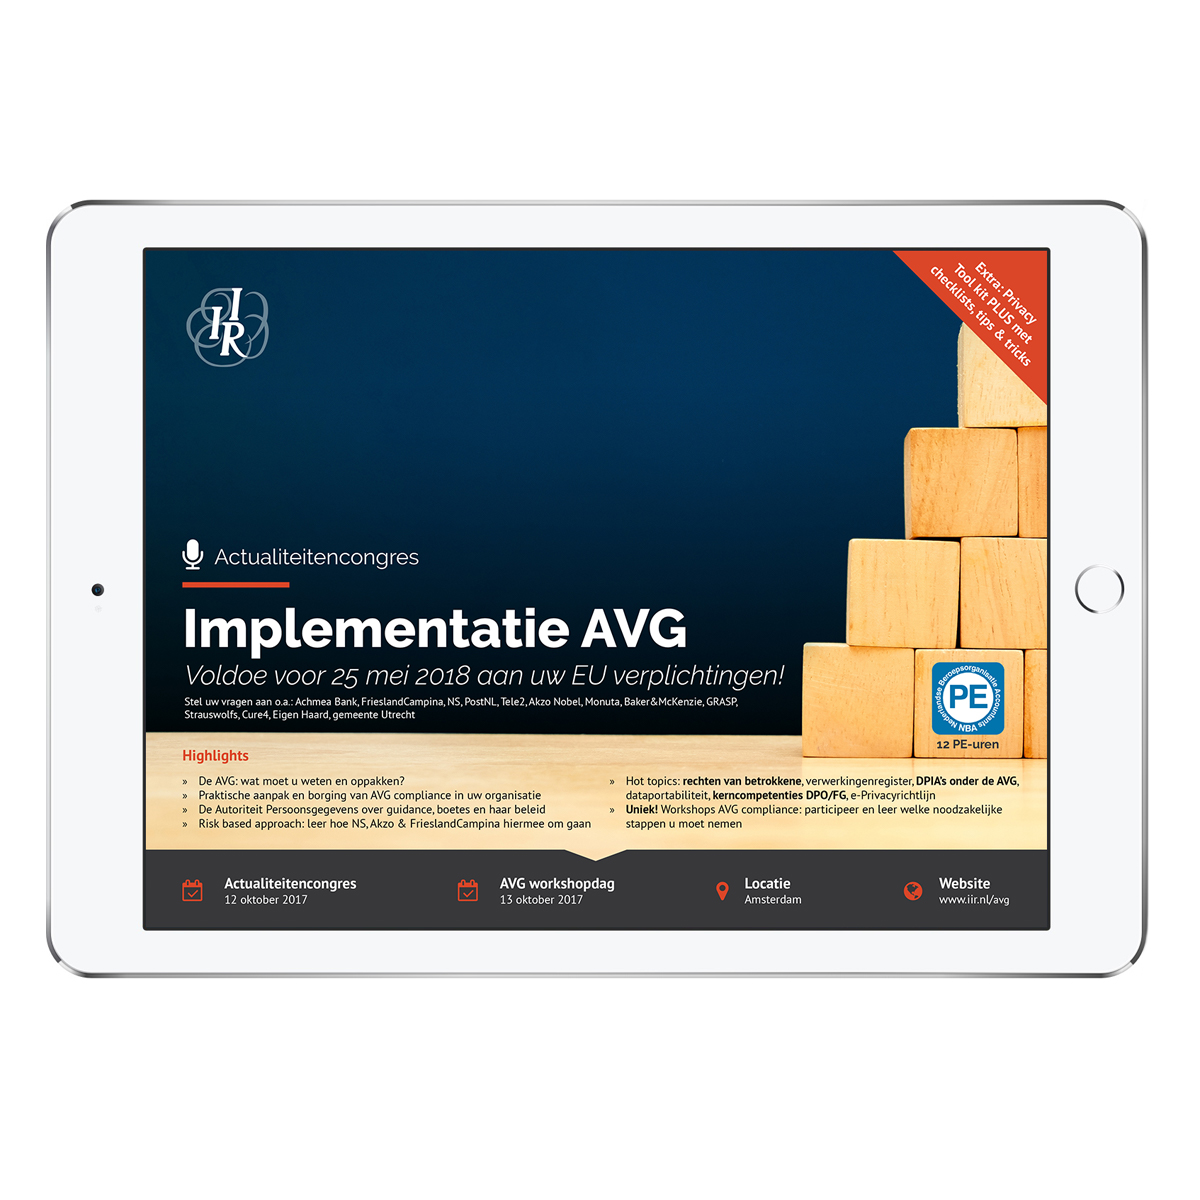 AVG Digitale brochure